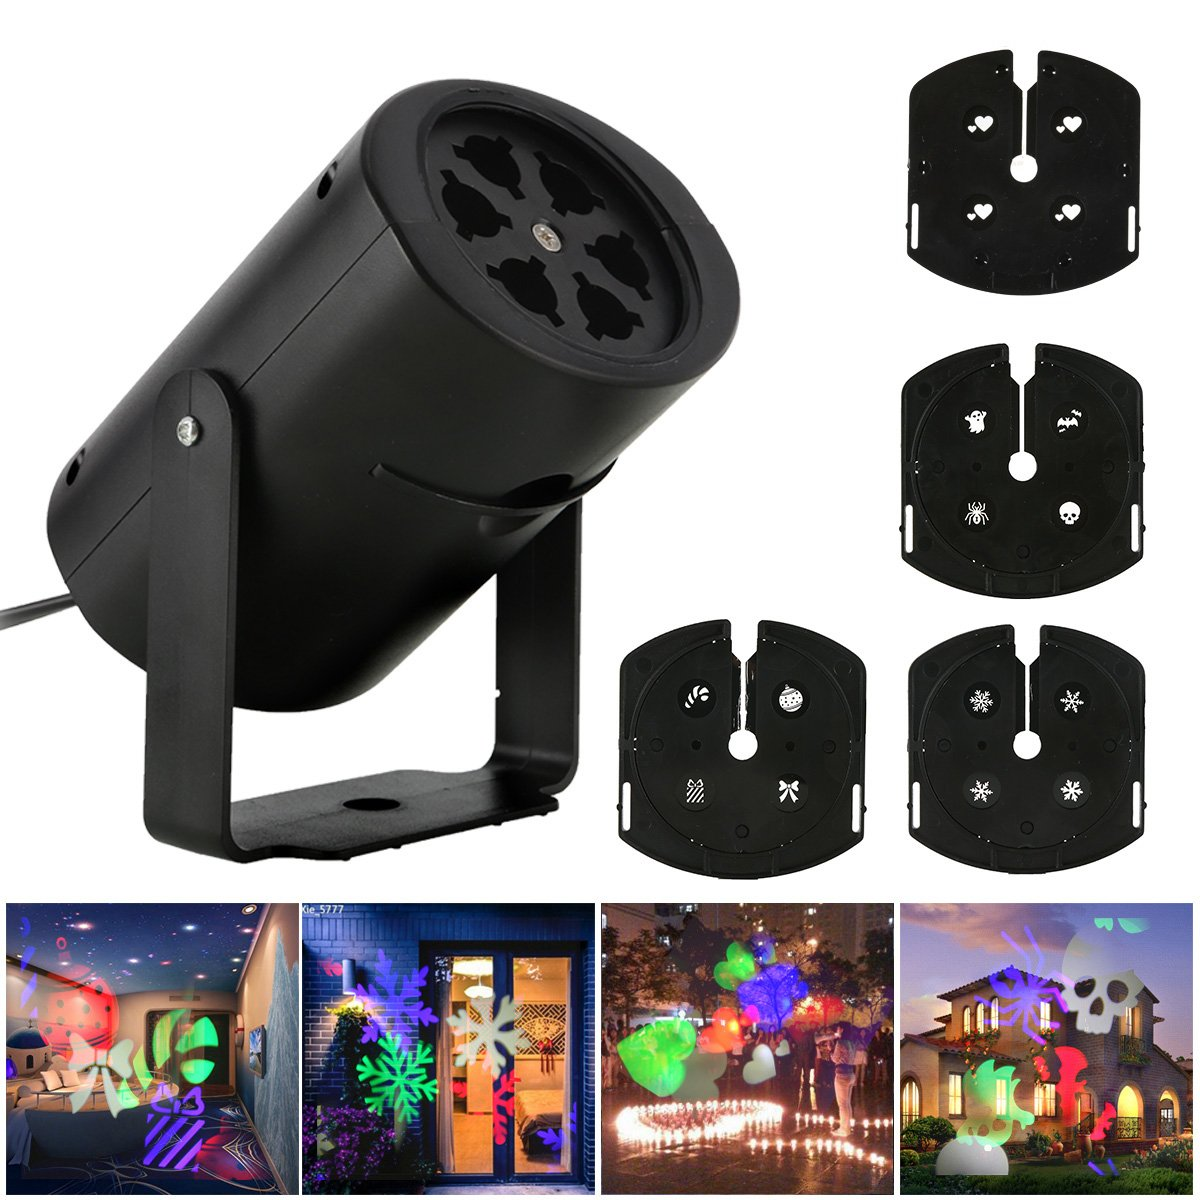 Minuano Christmas Led Projector Lights,Outdoor Christmas Projection,nnooLight 4 Pattern,Landscape Garden LED Lights for Various Themes Halloween, Christmas, etc.